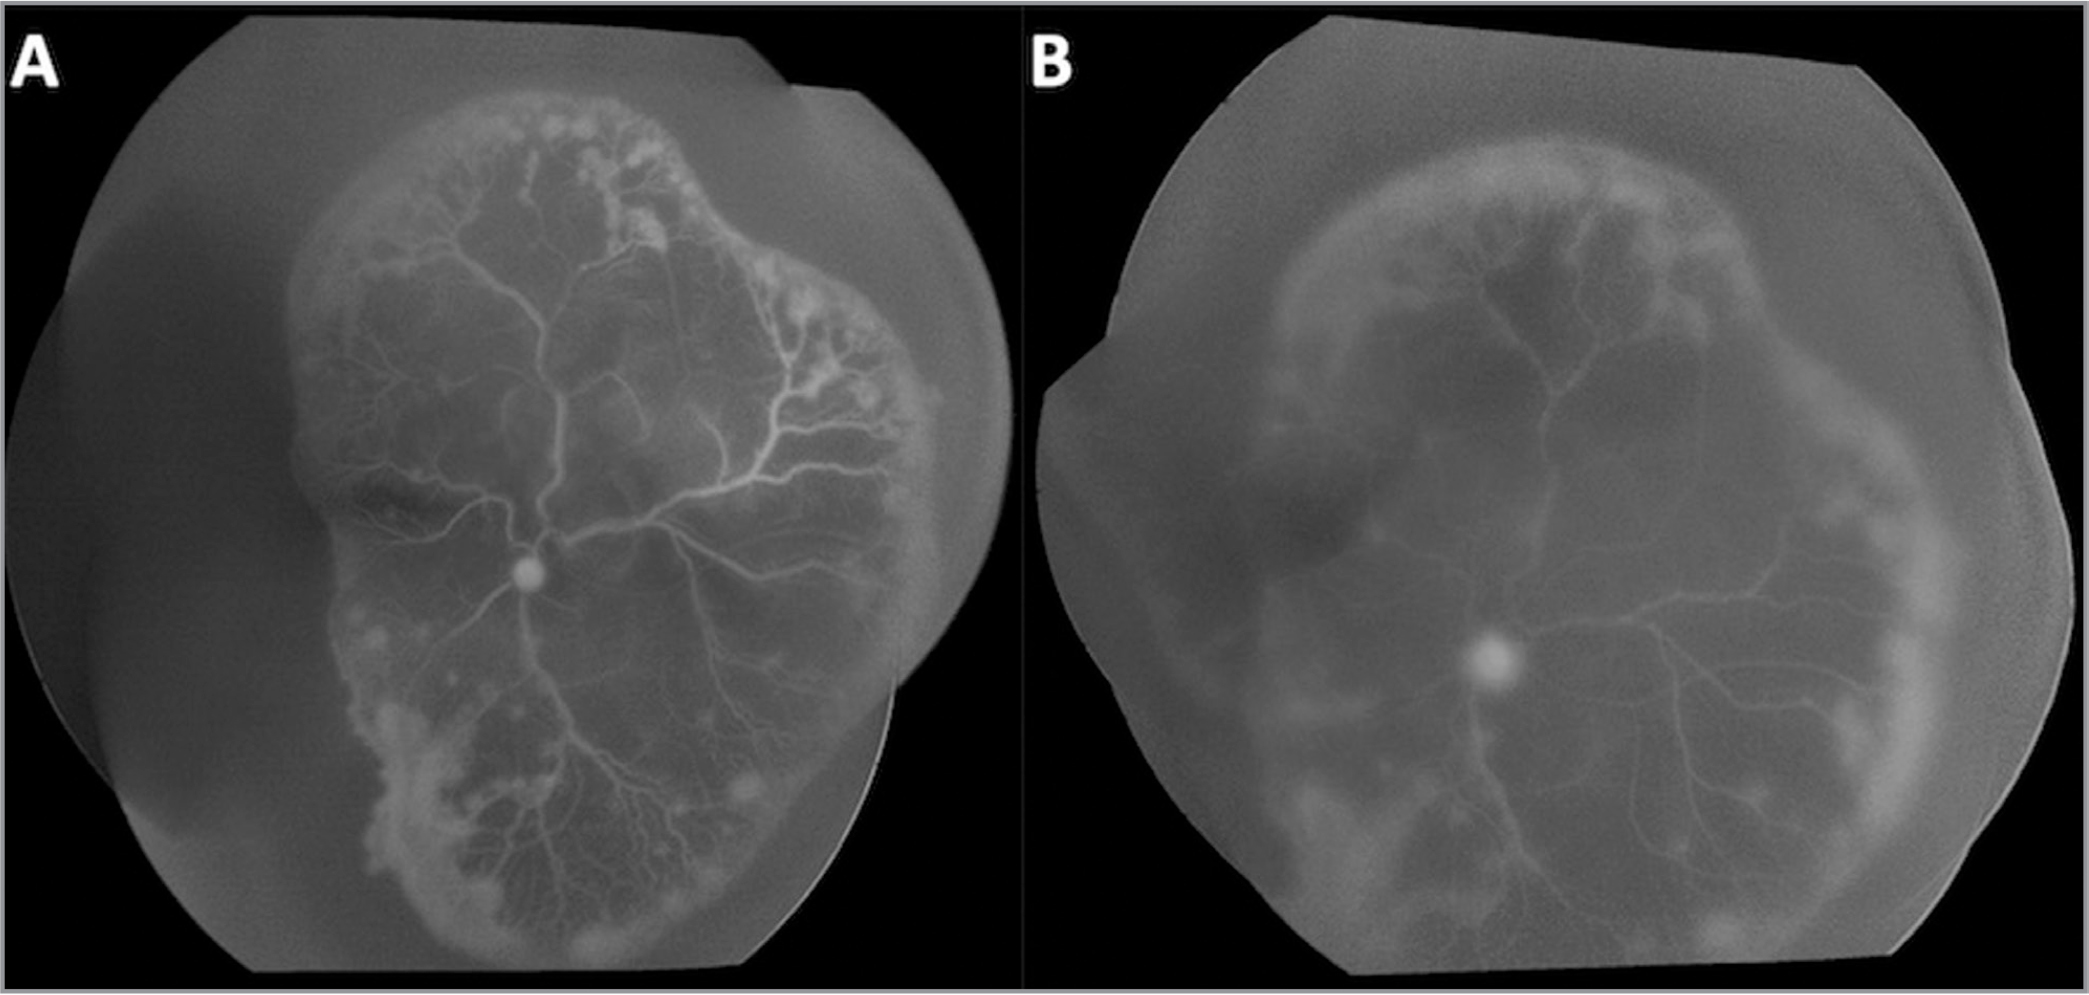 Fluorescein angiography of the right (A) and left (B) eyes at 34 weeks postmenstrual age demonstrating asymmetric, aggressive posterior retinopathy of prematurity.